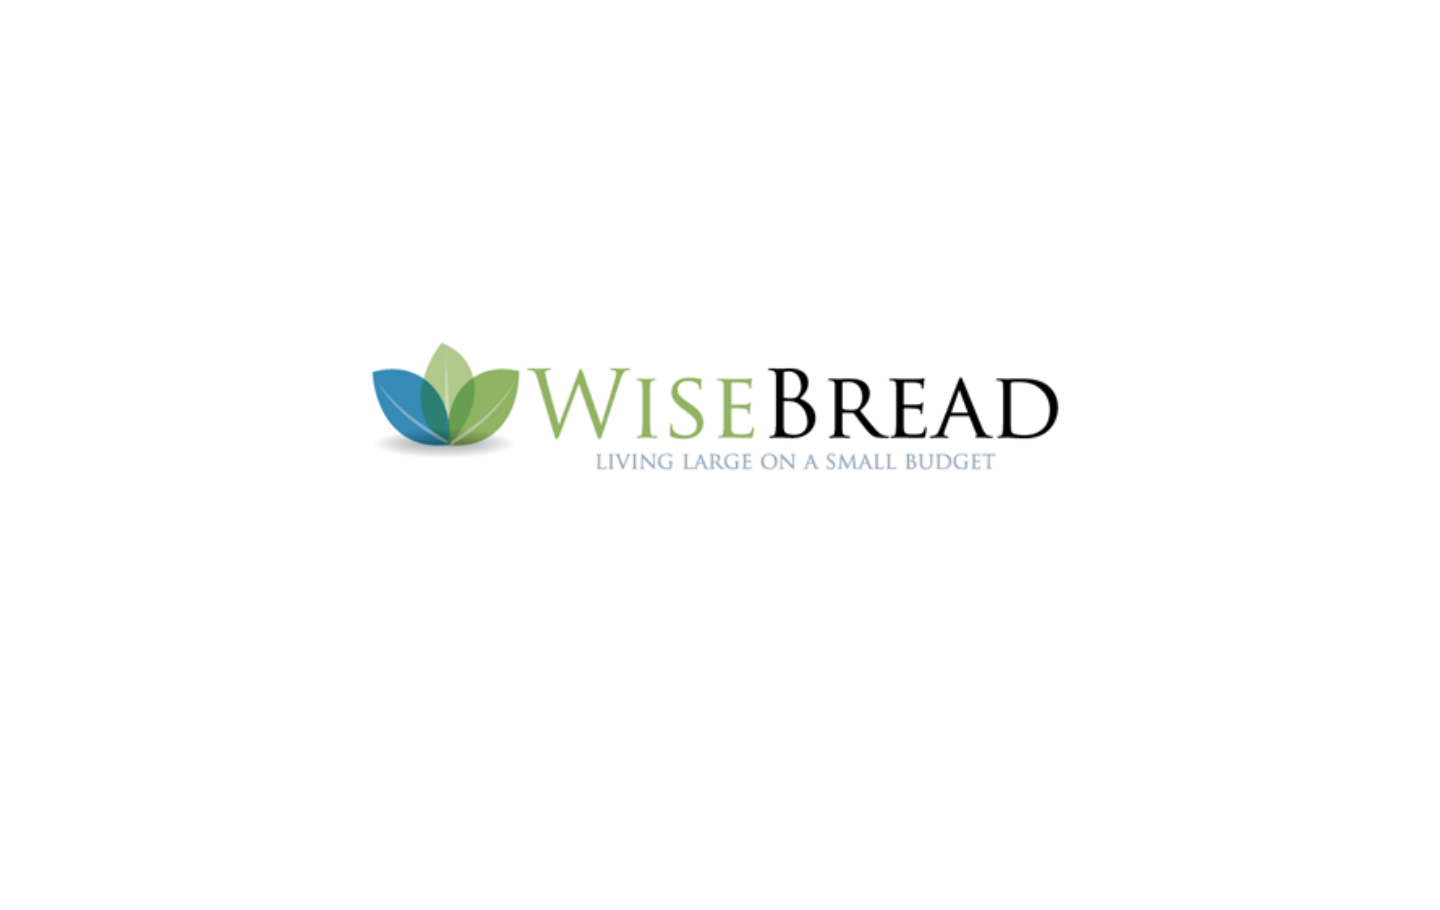 Wise Bread